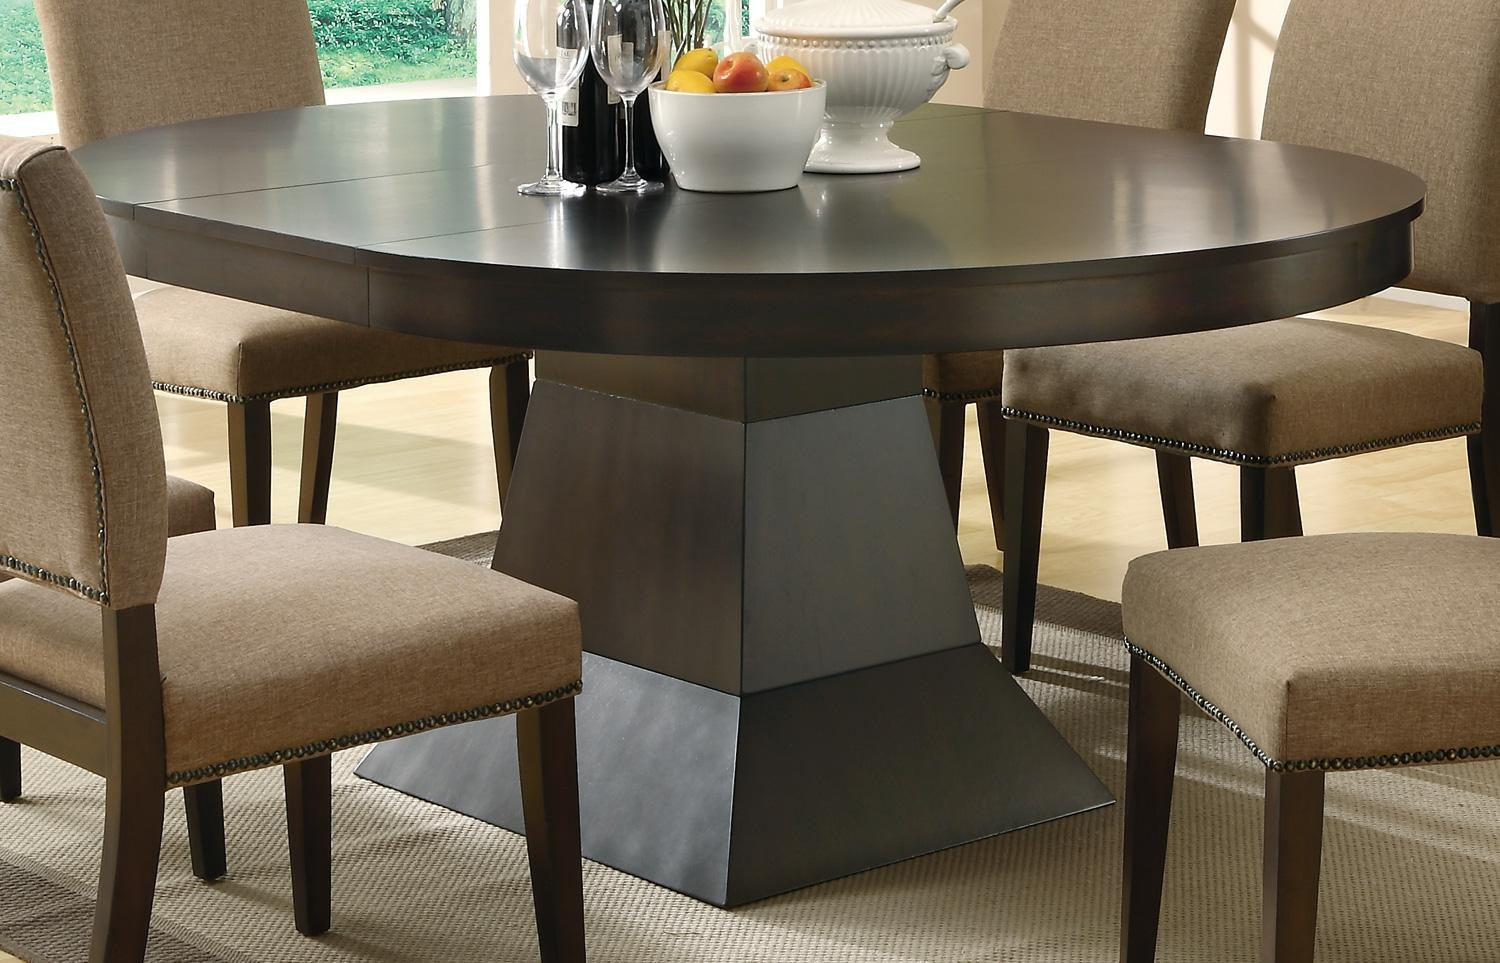 Myrtle Cappuccino Round Extendable Dining Table from